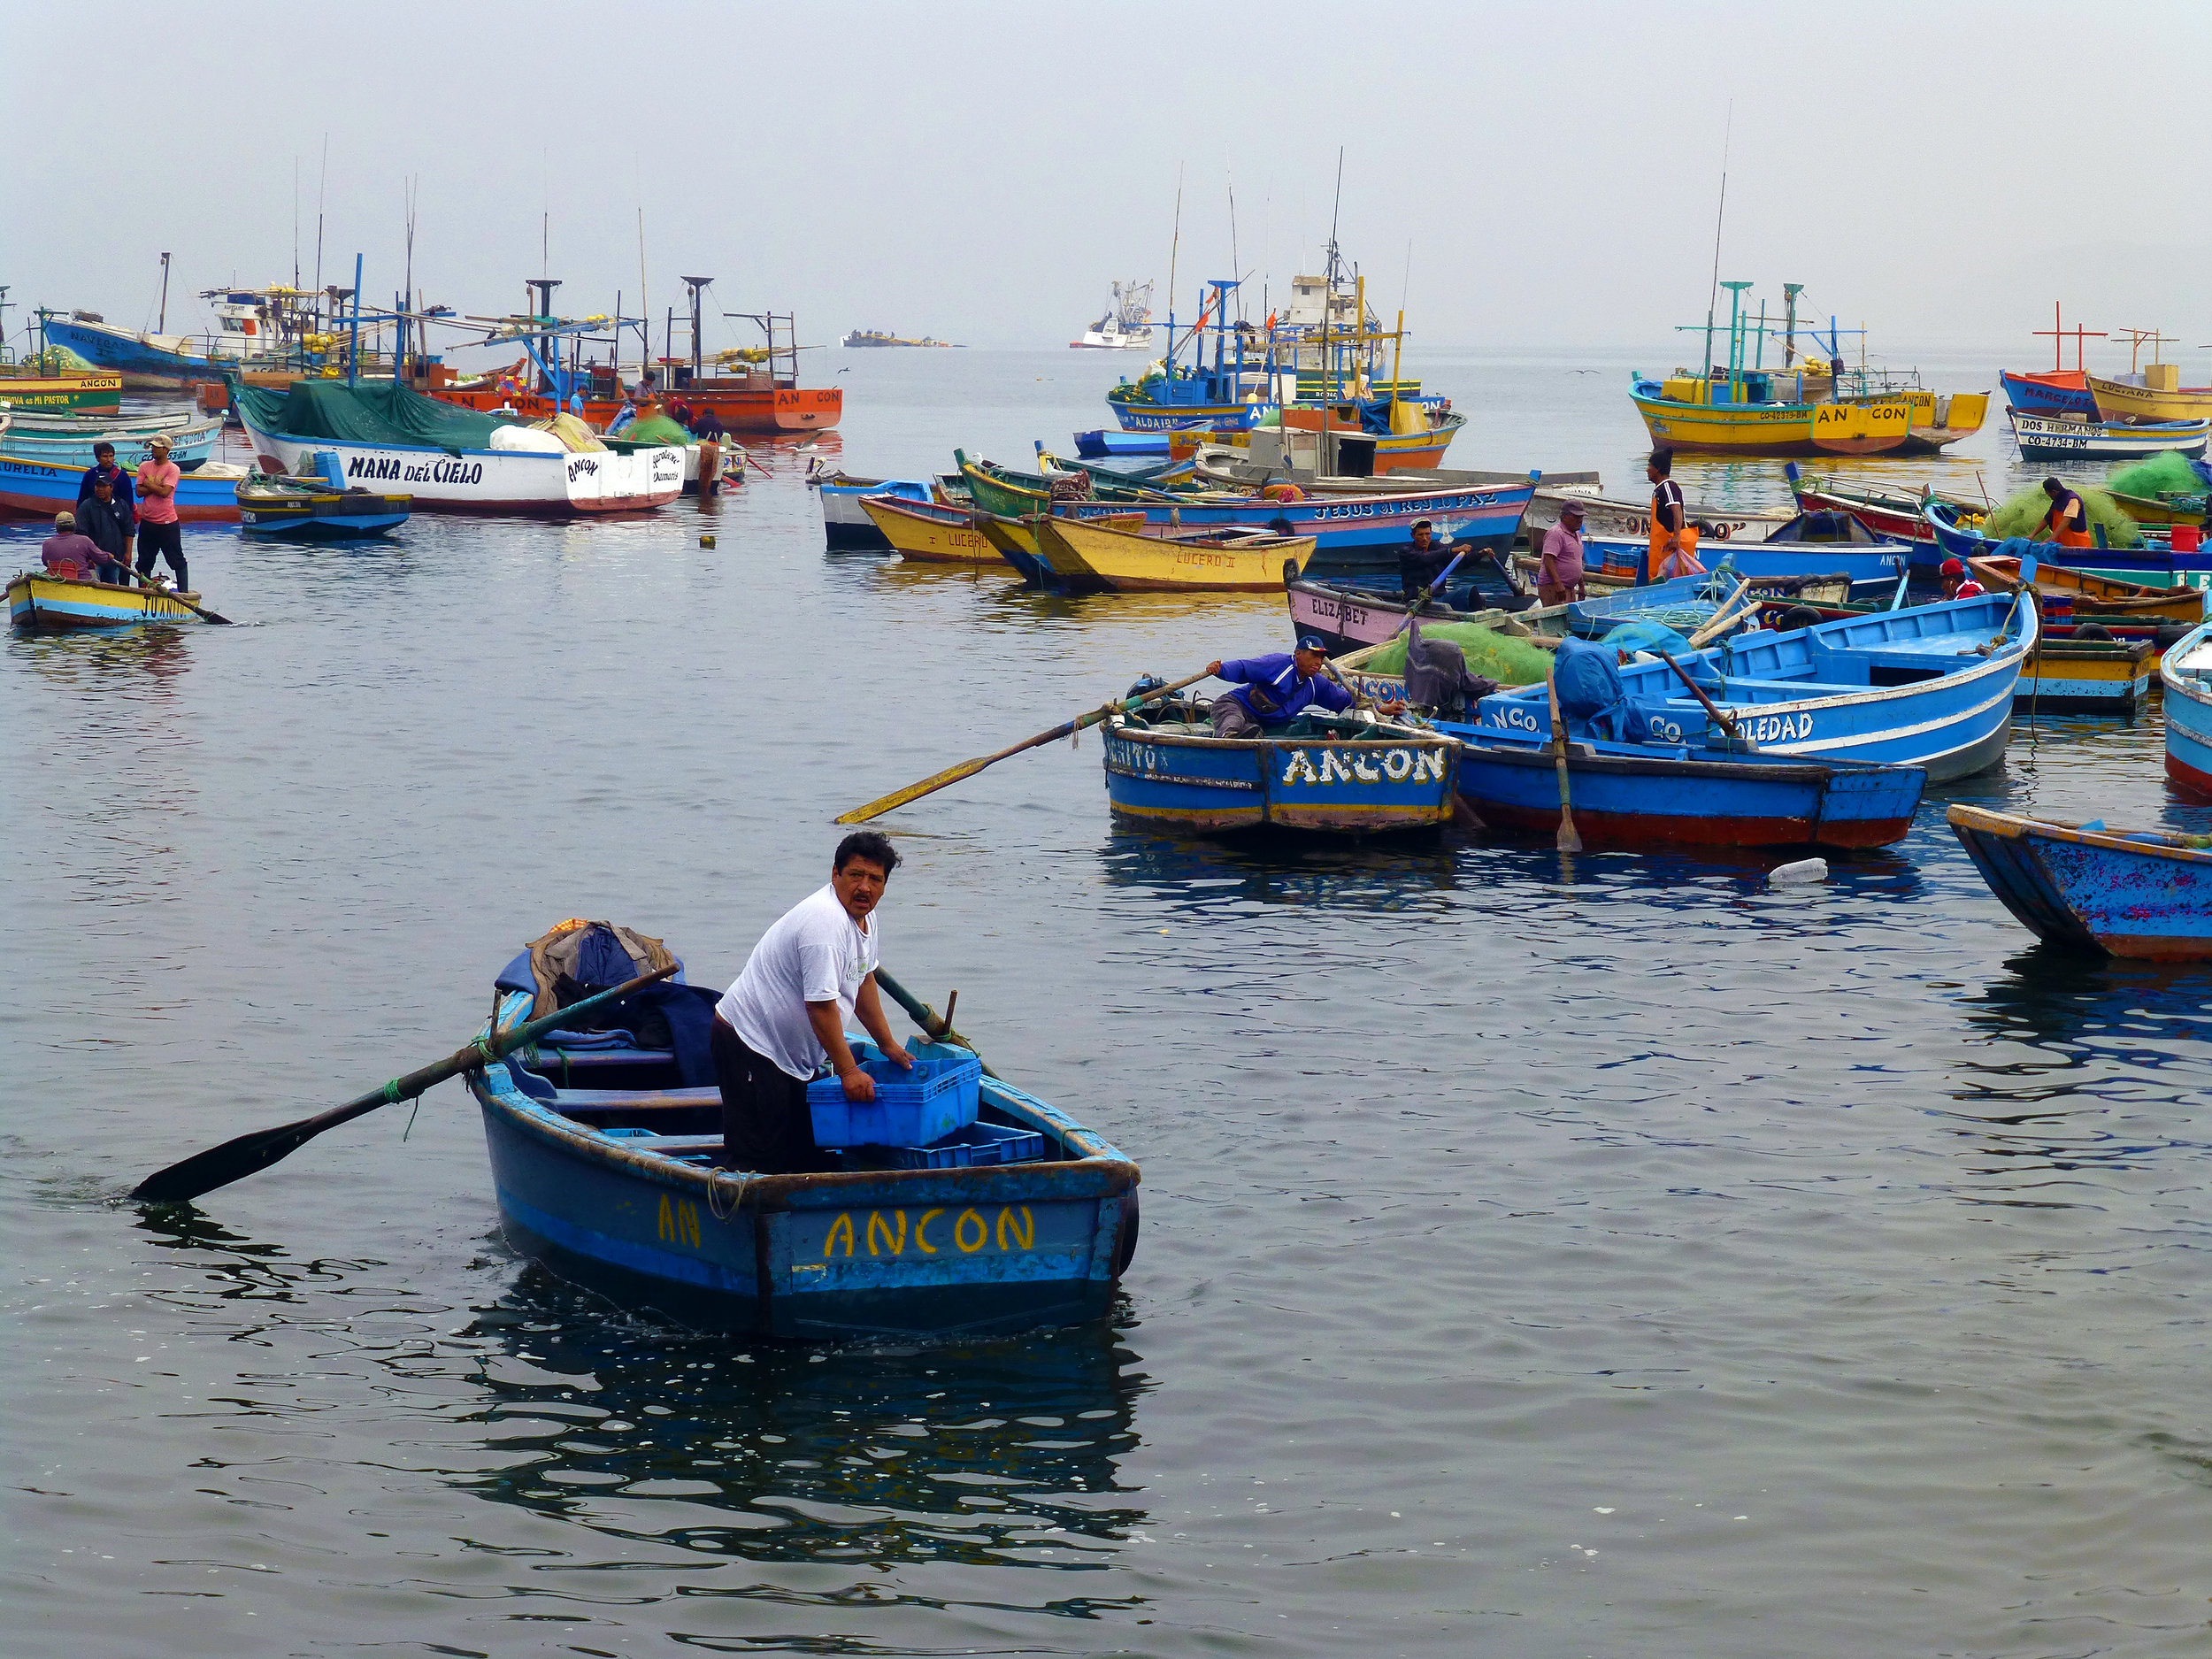 Small-scale fishermen face an unregulated market and income insecurity in Peru, but the local government -- with tools like FishPath and partners including TNC -- are hoping to improve management.